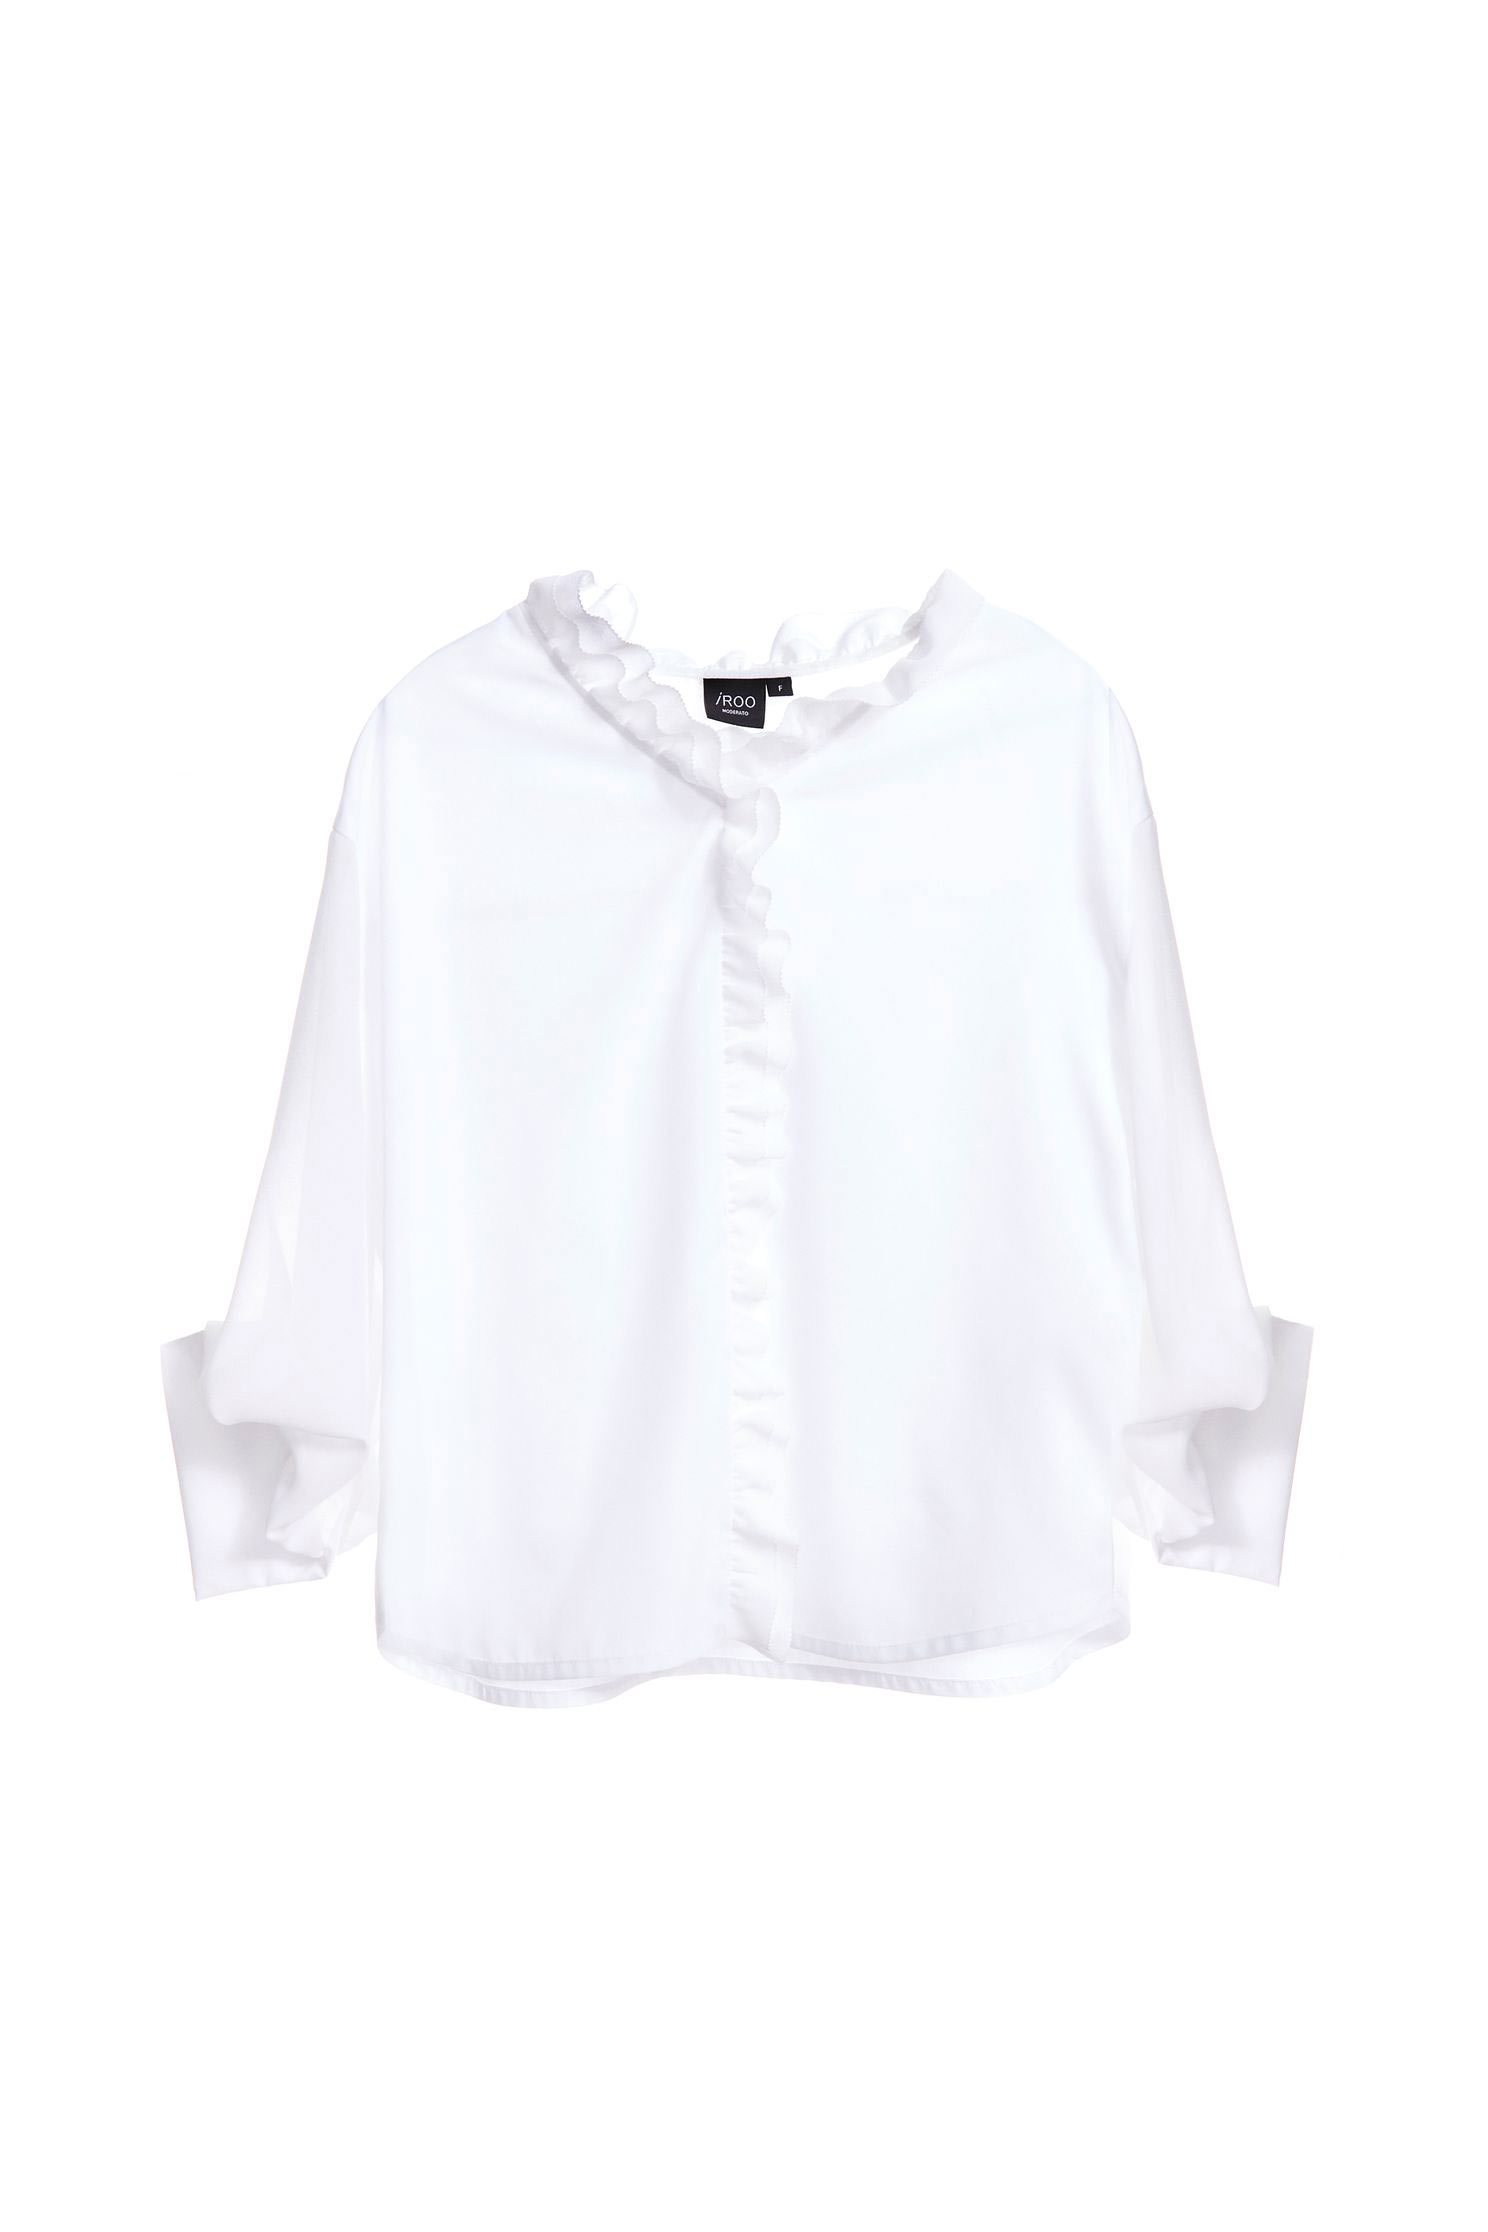 Temperament classic fashion long-sleeved top,3/4sleevetop,top,whitetop,i-select,longsleevetop